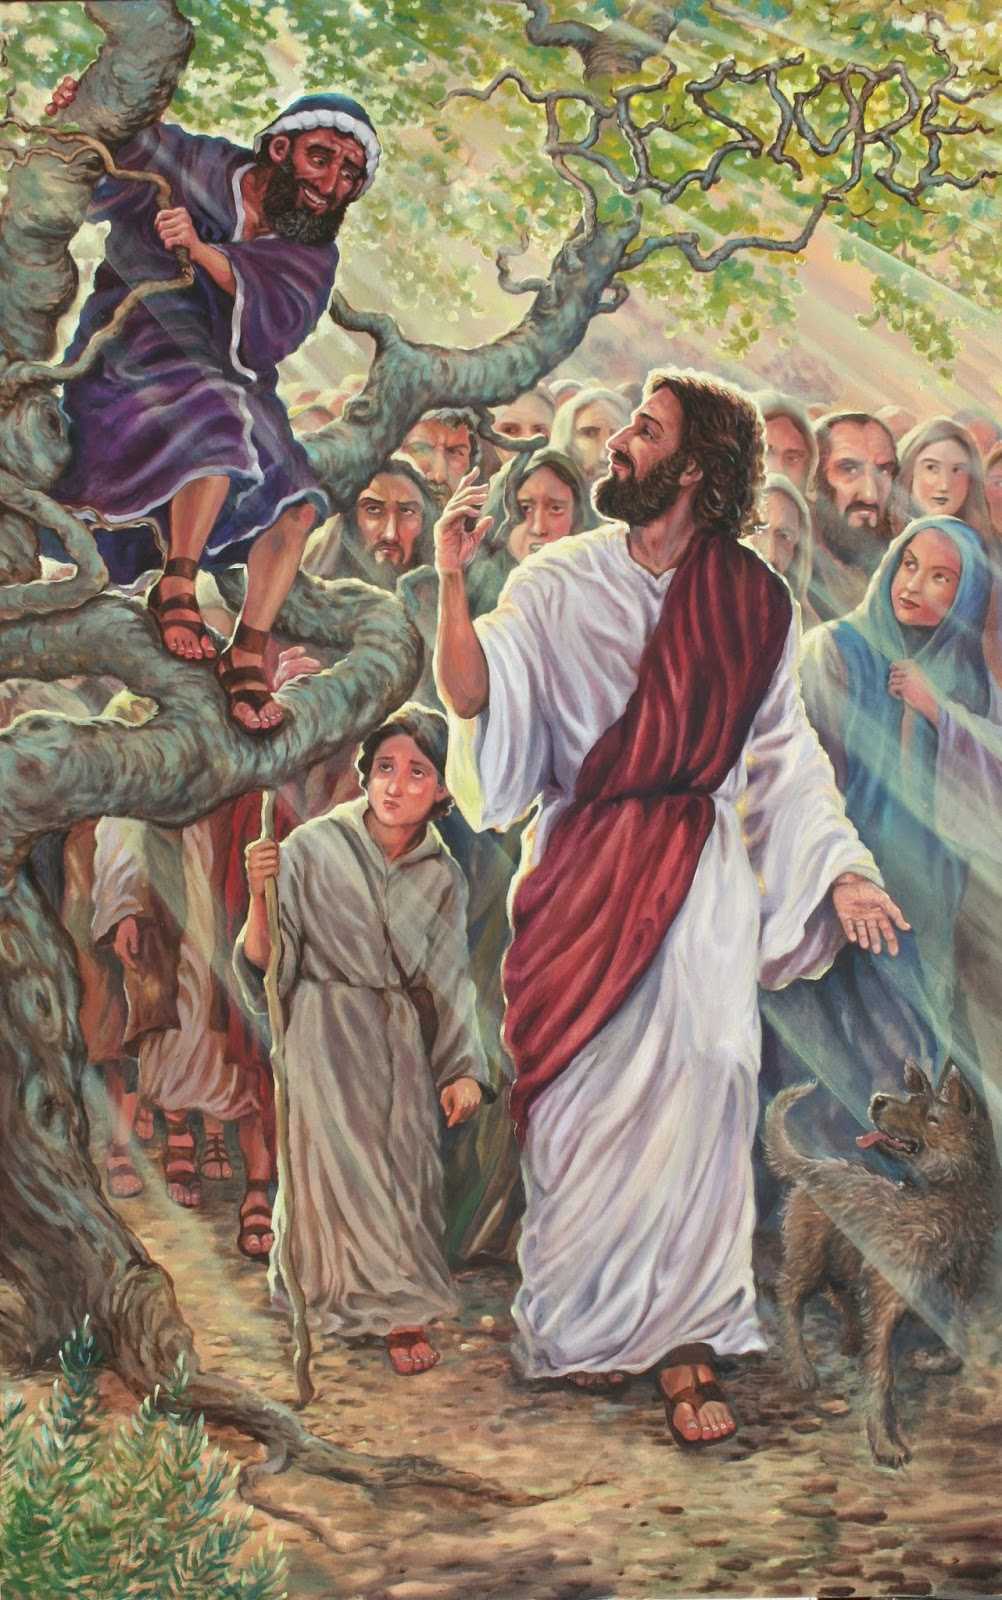 The story of Zacchaeus - Jesus knows him